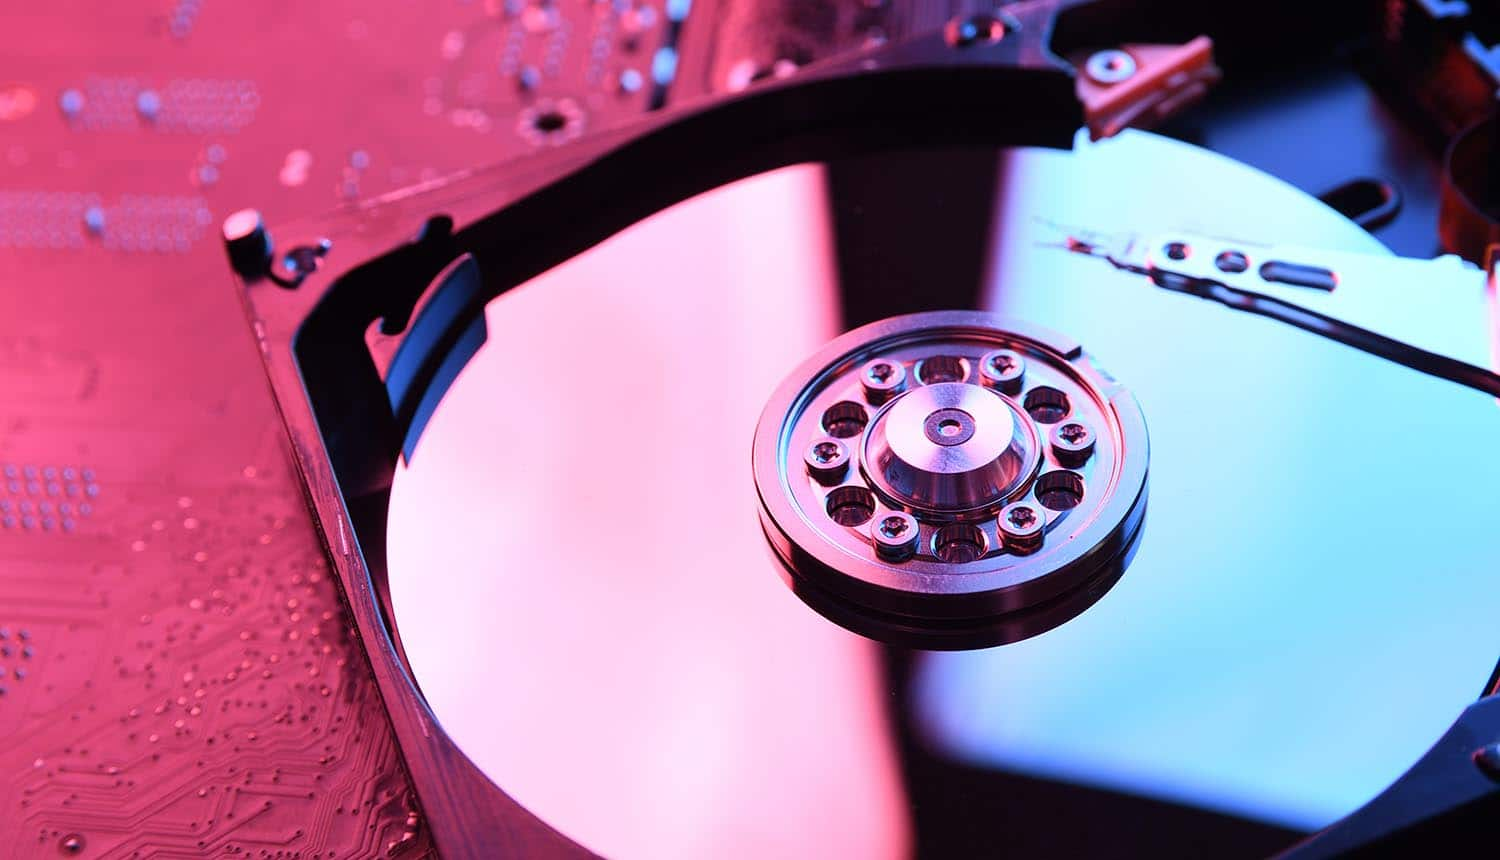 Computer hard disk drives showing data recovery for ransomware attack